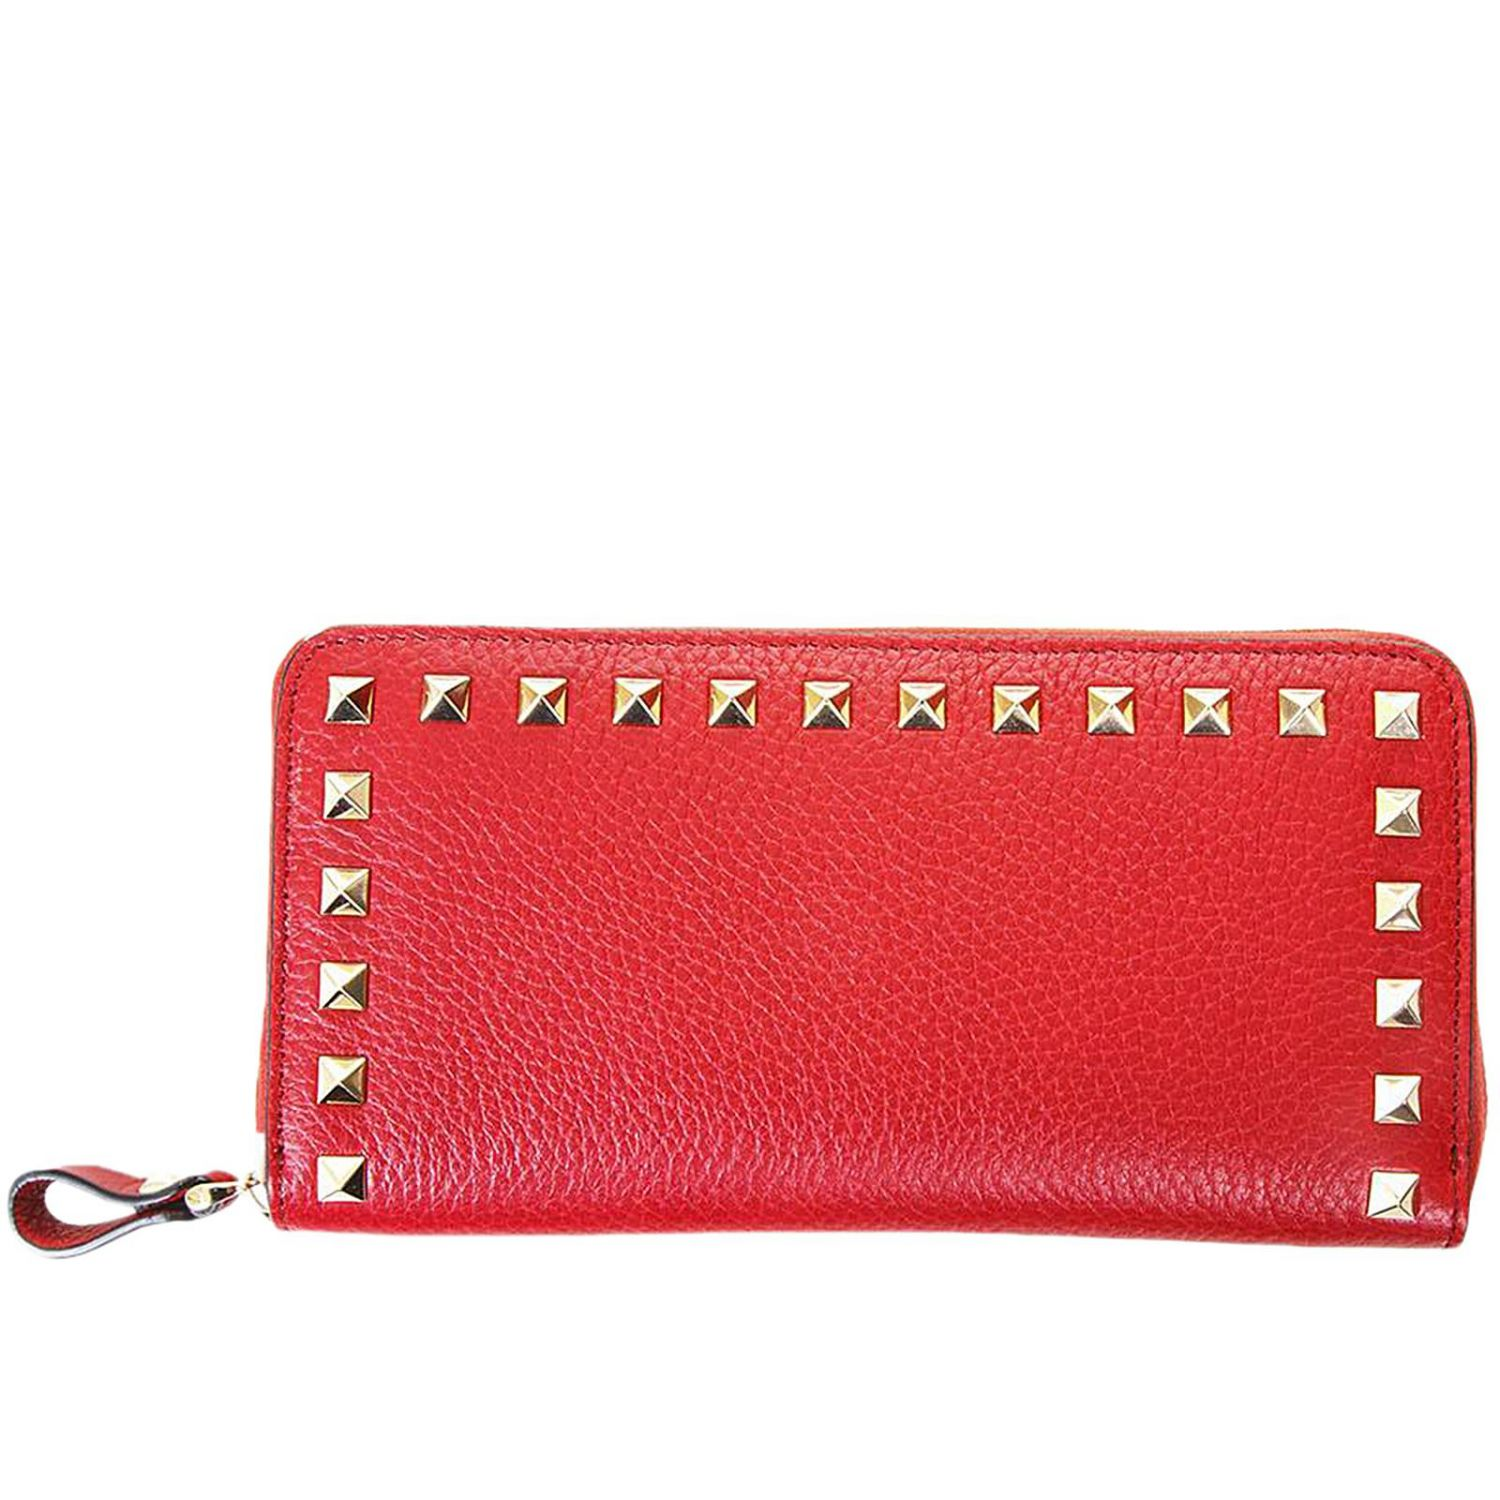 Wallet Valentino Rockstud Spikes Wallet With Zip Around In Leather With Metal Studs 8358184